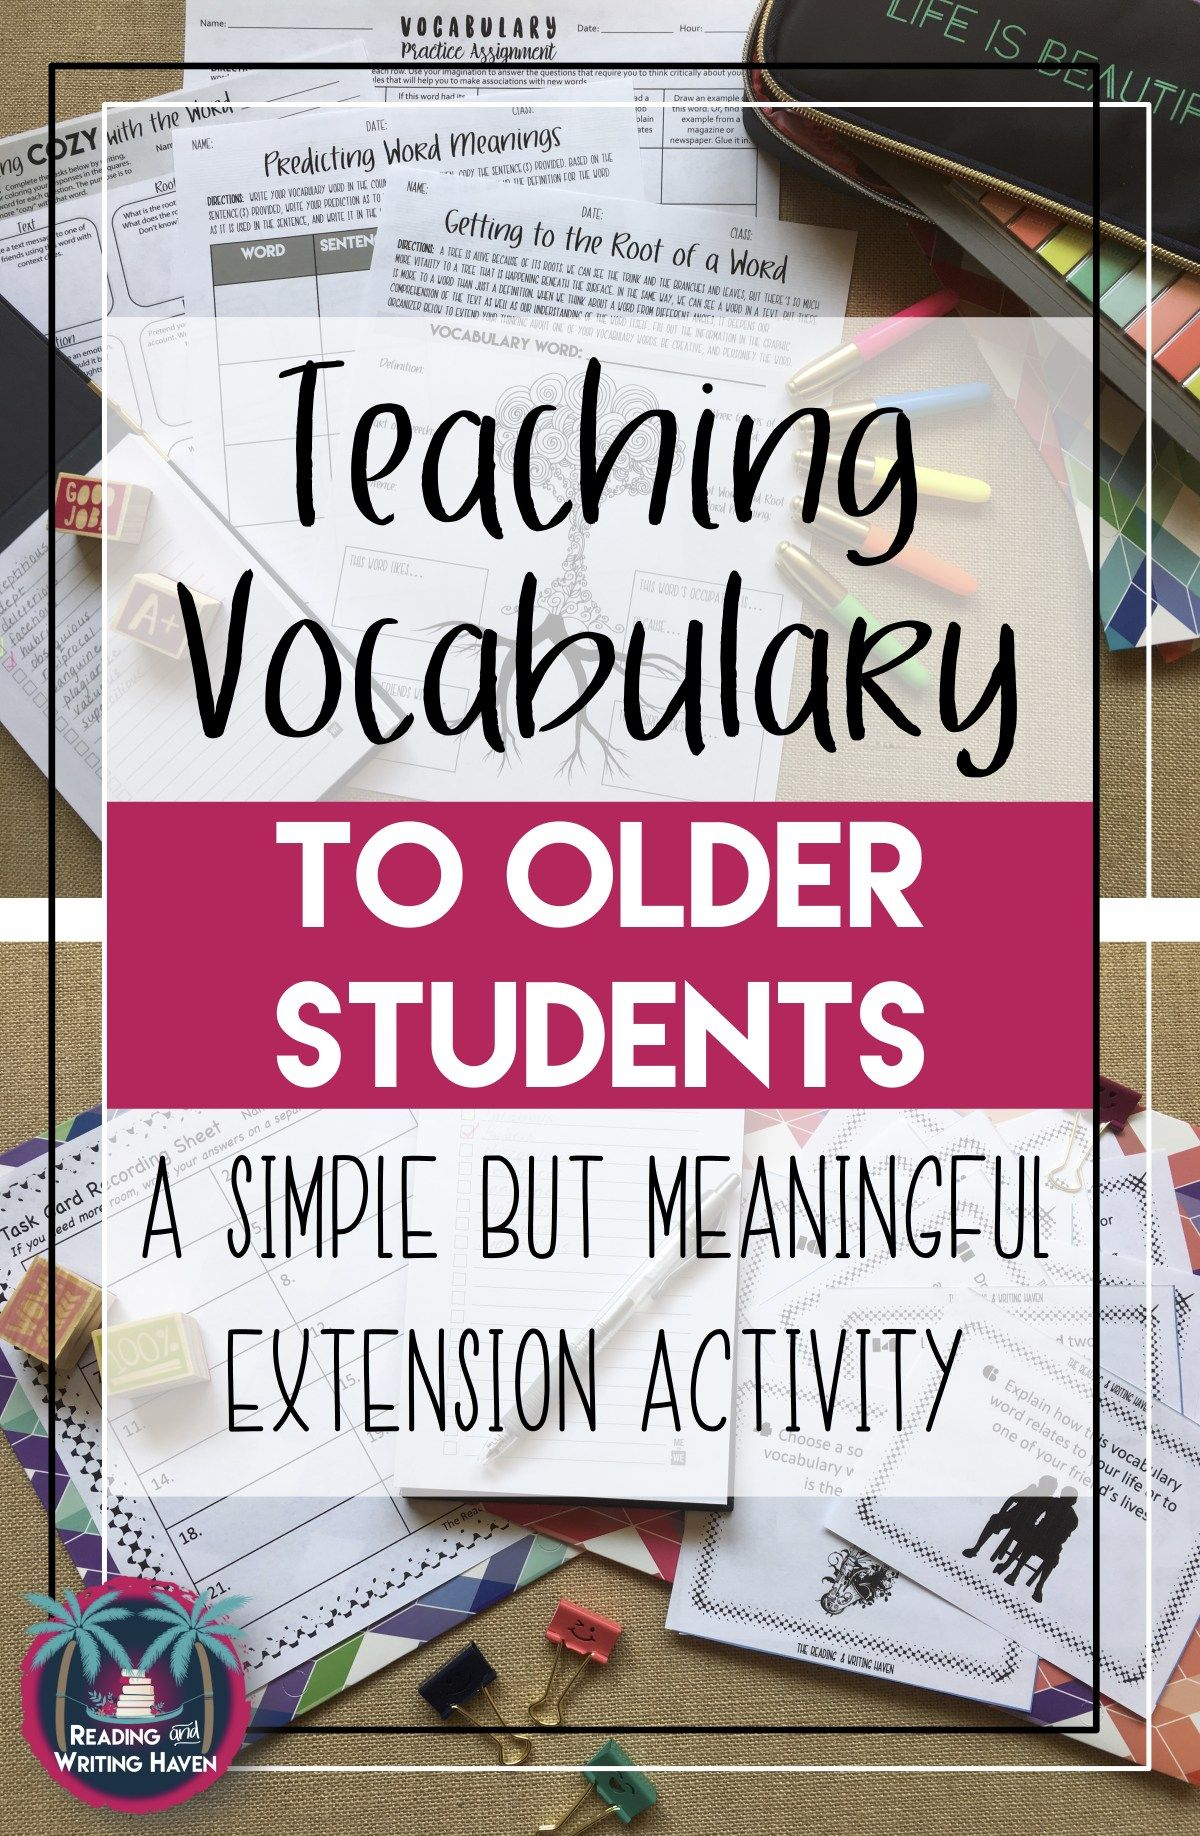 A Fun Vocabulary Activity For Middle Or High School